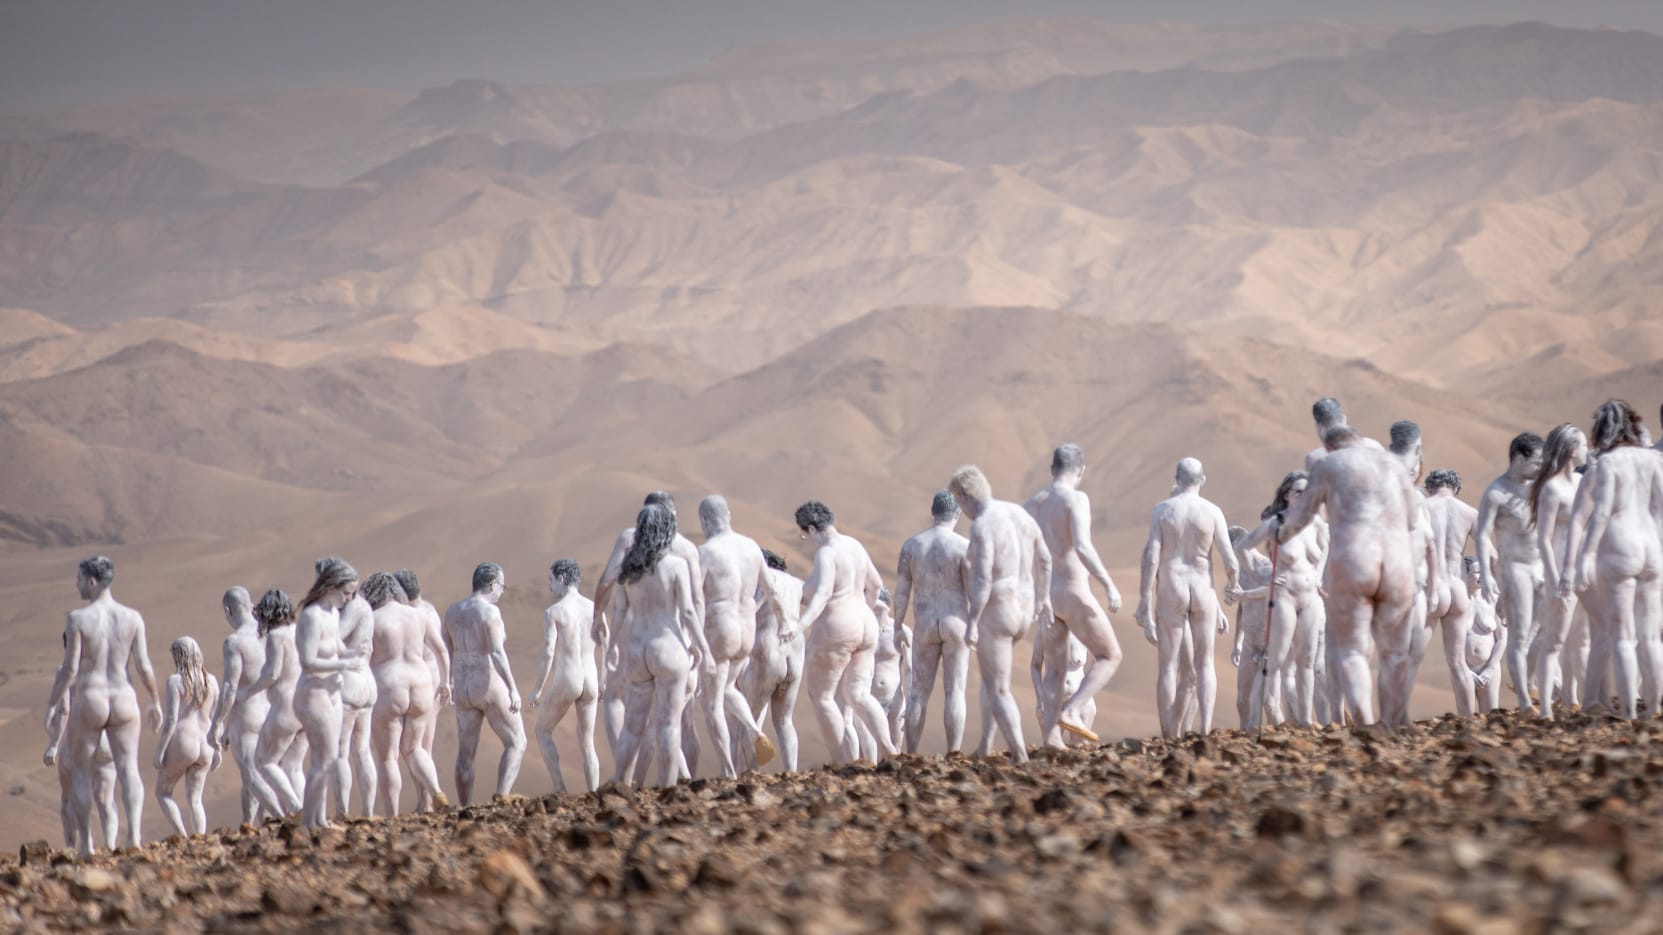 October 17, 2021. Photographer Spencer Tunick on a photo shoot set Near the Israeli city of Arad, close to the Dead Sea.